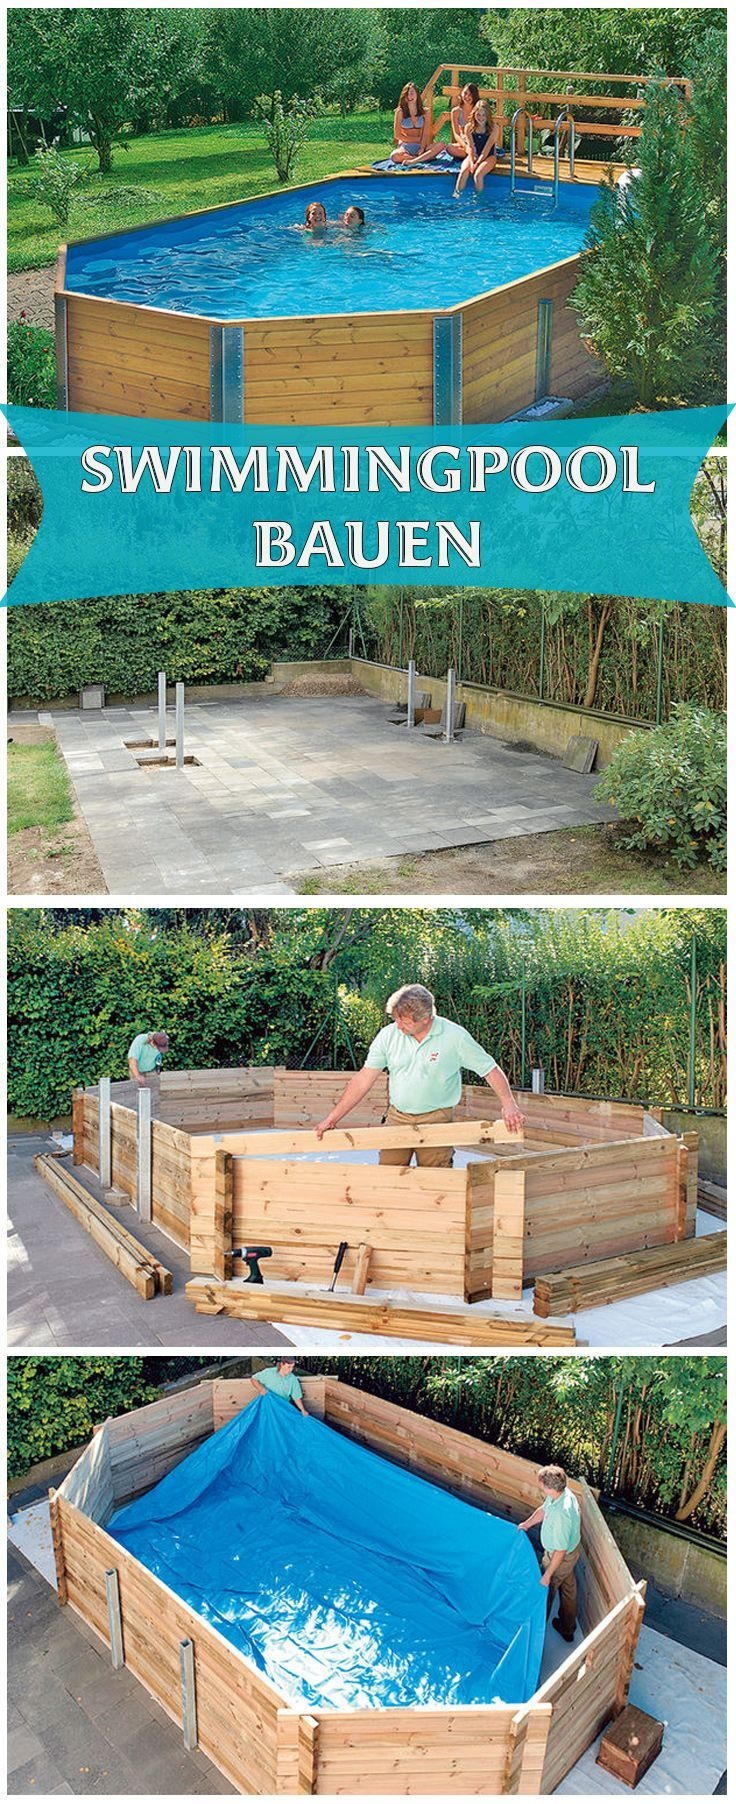 Jacuzzi Pool Was Ist Das Bausatz Pool Pallet Ideas Diy Pool Diy Swimming Pool Pool